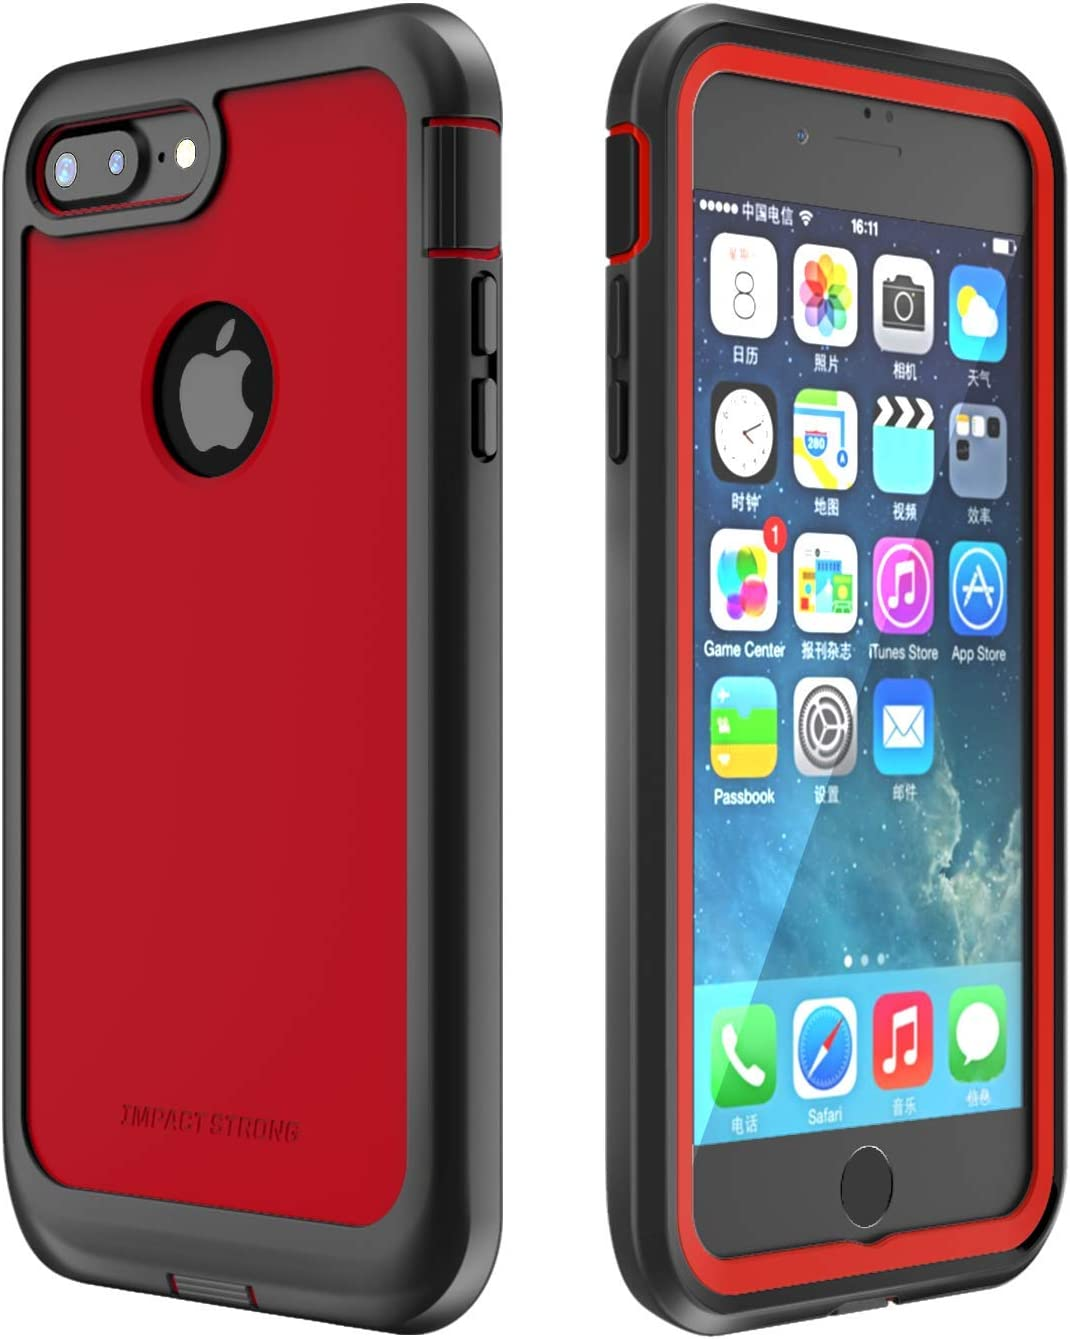 ImpactStrong iPhone 7 Plus/iPhone 8 Plus Case, Ultra Protective Case with Built-in Clear Screen Protector Full Body Cover for iPhone 7 Plus/iPhone 8 Plus (Red)